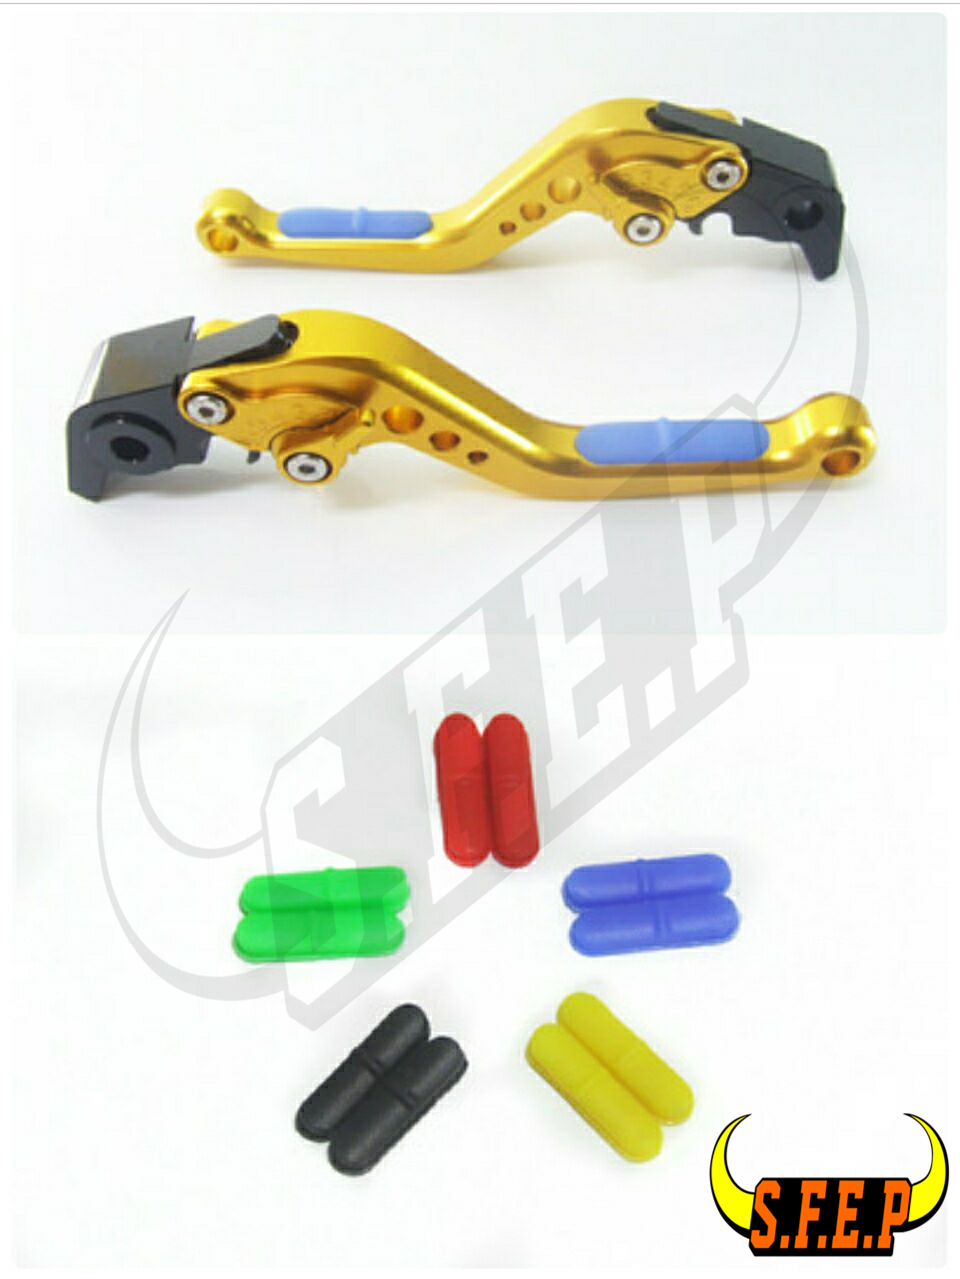 CNC Adjustable Motorcycle Brake and Clutch Levers with Anti-Slip For Honda CBF1000 2006-2009